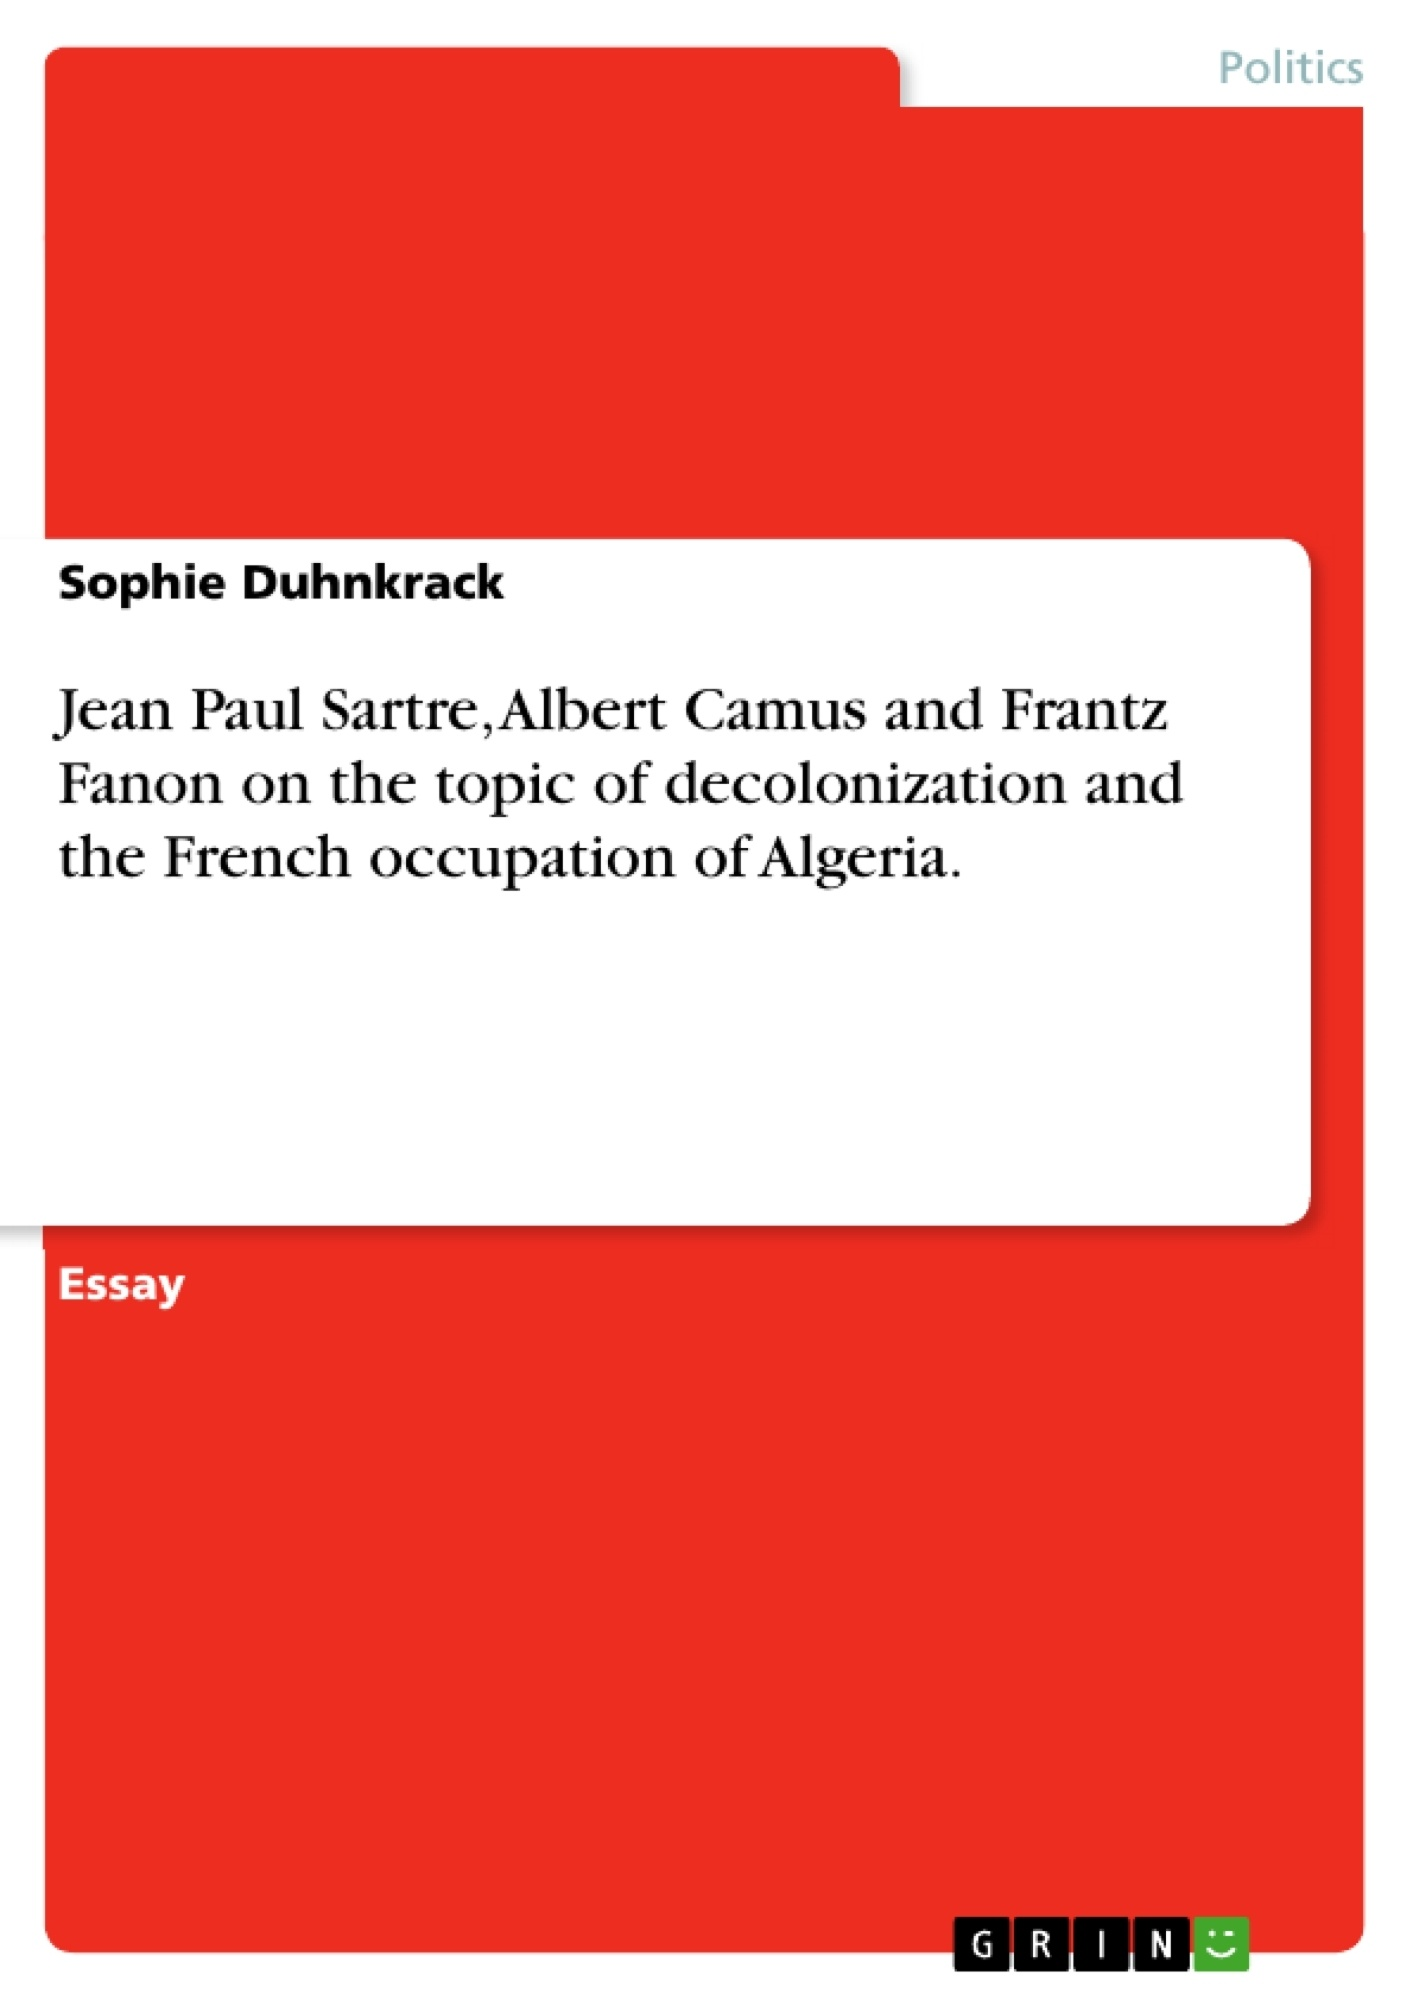 jean paul sartre albert camus and frantz fanon on the topic of  jean paul sartre albert camus and frantz fanon on the topic of publish your master s thesis bachelor s thesis essay or term paper